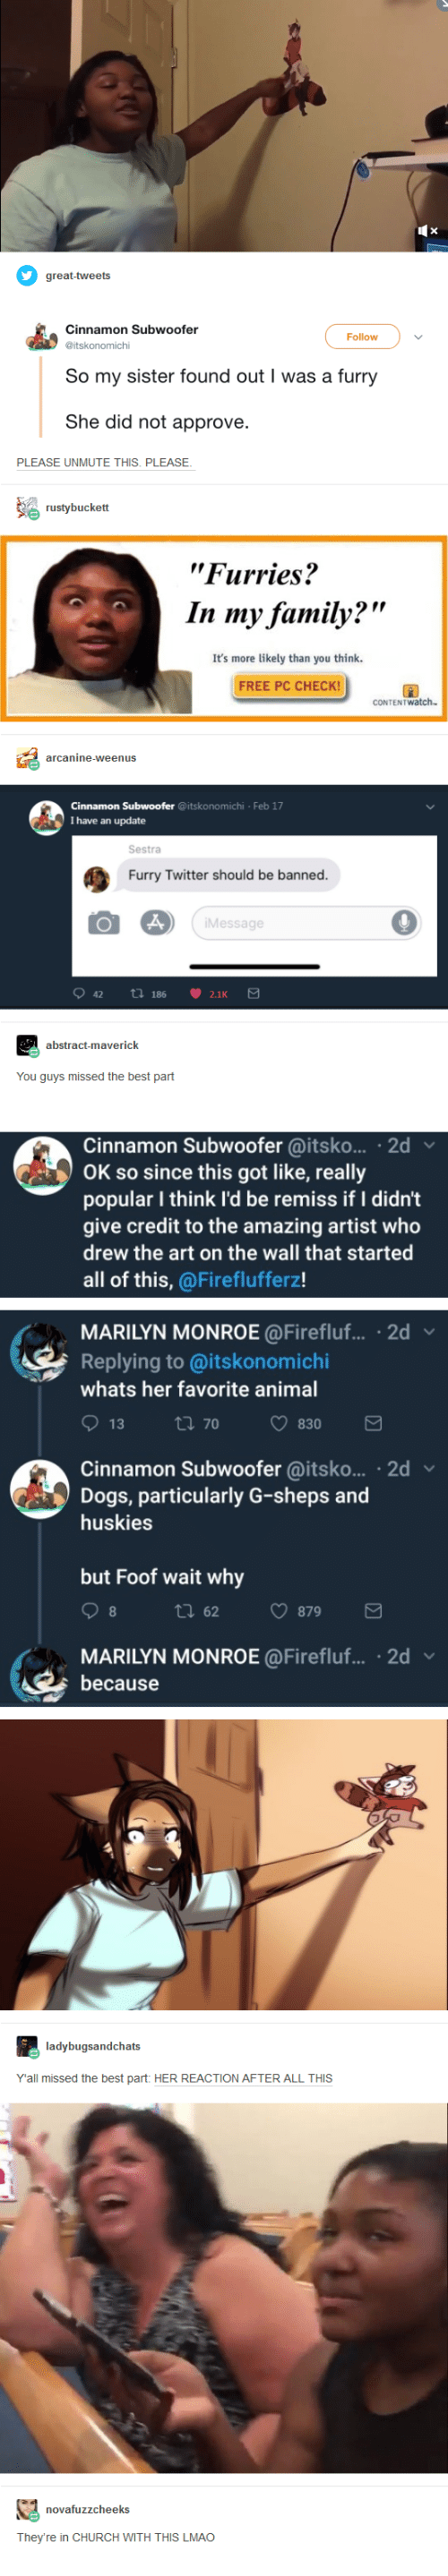 """monroe: Follow  So my sister found out I was a furry  She did not approve  PLEASE UNMUTE THIS. PLEASE  """"Furries?  In my family?""""  It's more likely than you think  FREE PC CHECK  Feb 17  I have an update  Sestra  Furry Twitter should be banned.  Message  You guys missed the best part  Cinnamon Subwoofer @itsko... 2d  OK so since this got like, really  popular I think l'd be remiss if I didn't  give credit to the amazing artist who  drew the art on the wall that started  all of this, @Fireflufferz!  MARILYN MONROE@Firefluf.... 2d  Replying to @itskonomichi  whats her favorite anima  Cinnamon Subwoofer @itsko... 2d  Dogs, particularly G-sheps and  huskies  but Foof wait why  tl 62 879  MARILYN MONROE @Firefluf... 2d v  because  Yall missed the best part: HER REACTION AFTER ALL THIS  They're in CHURCH WITH THIS LMAO"""